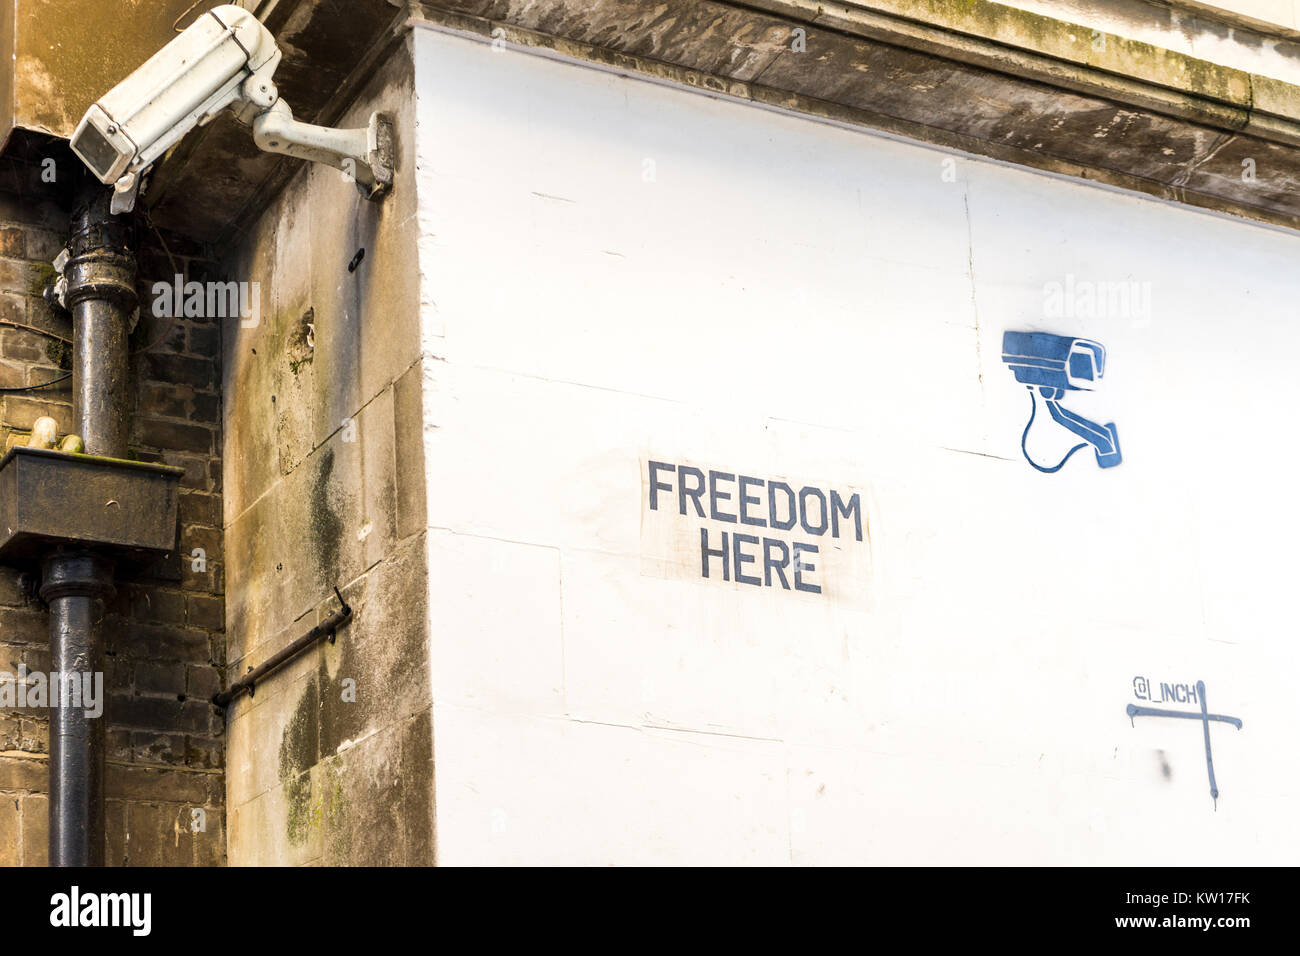 Stencil art graffiti 'Freedom' concept on a white wall with a surveillance camera next to it in Southampton - Stock Image